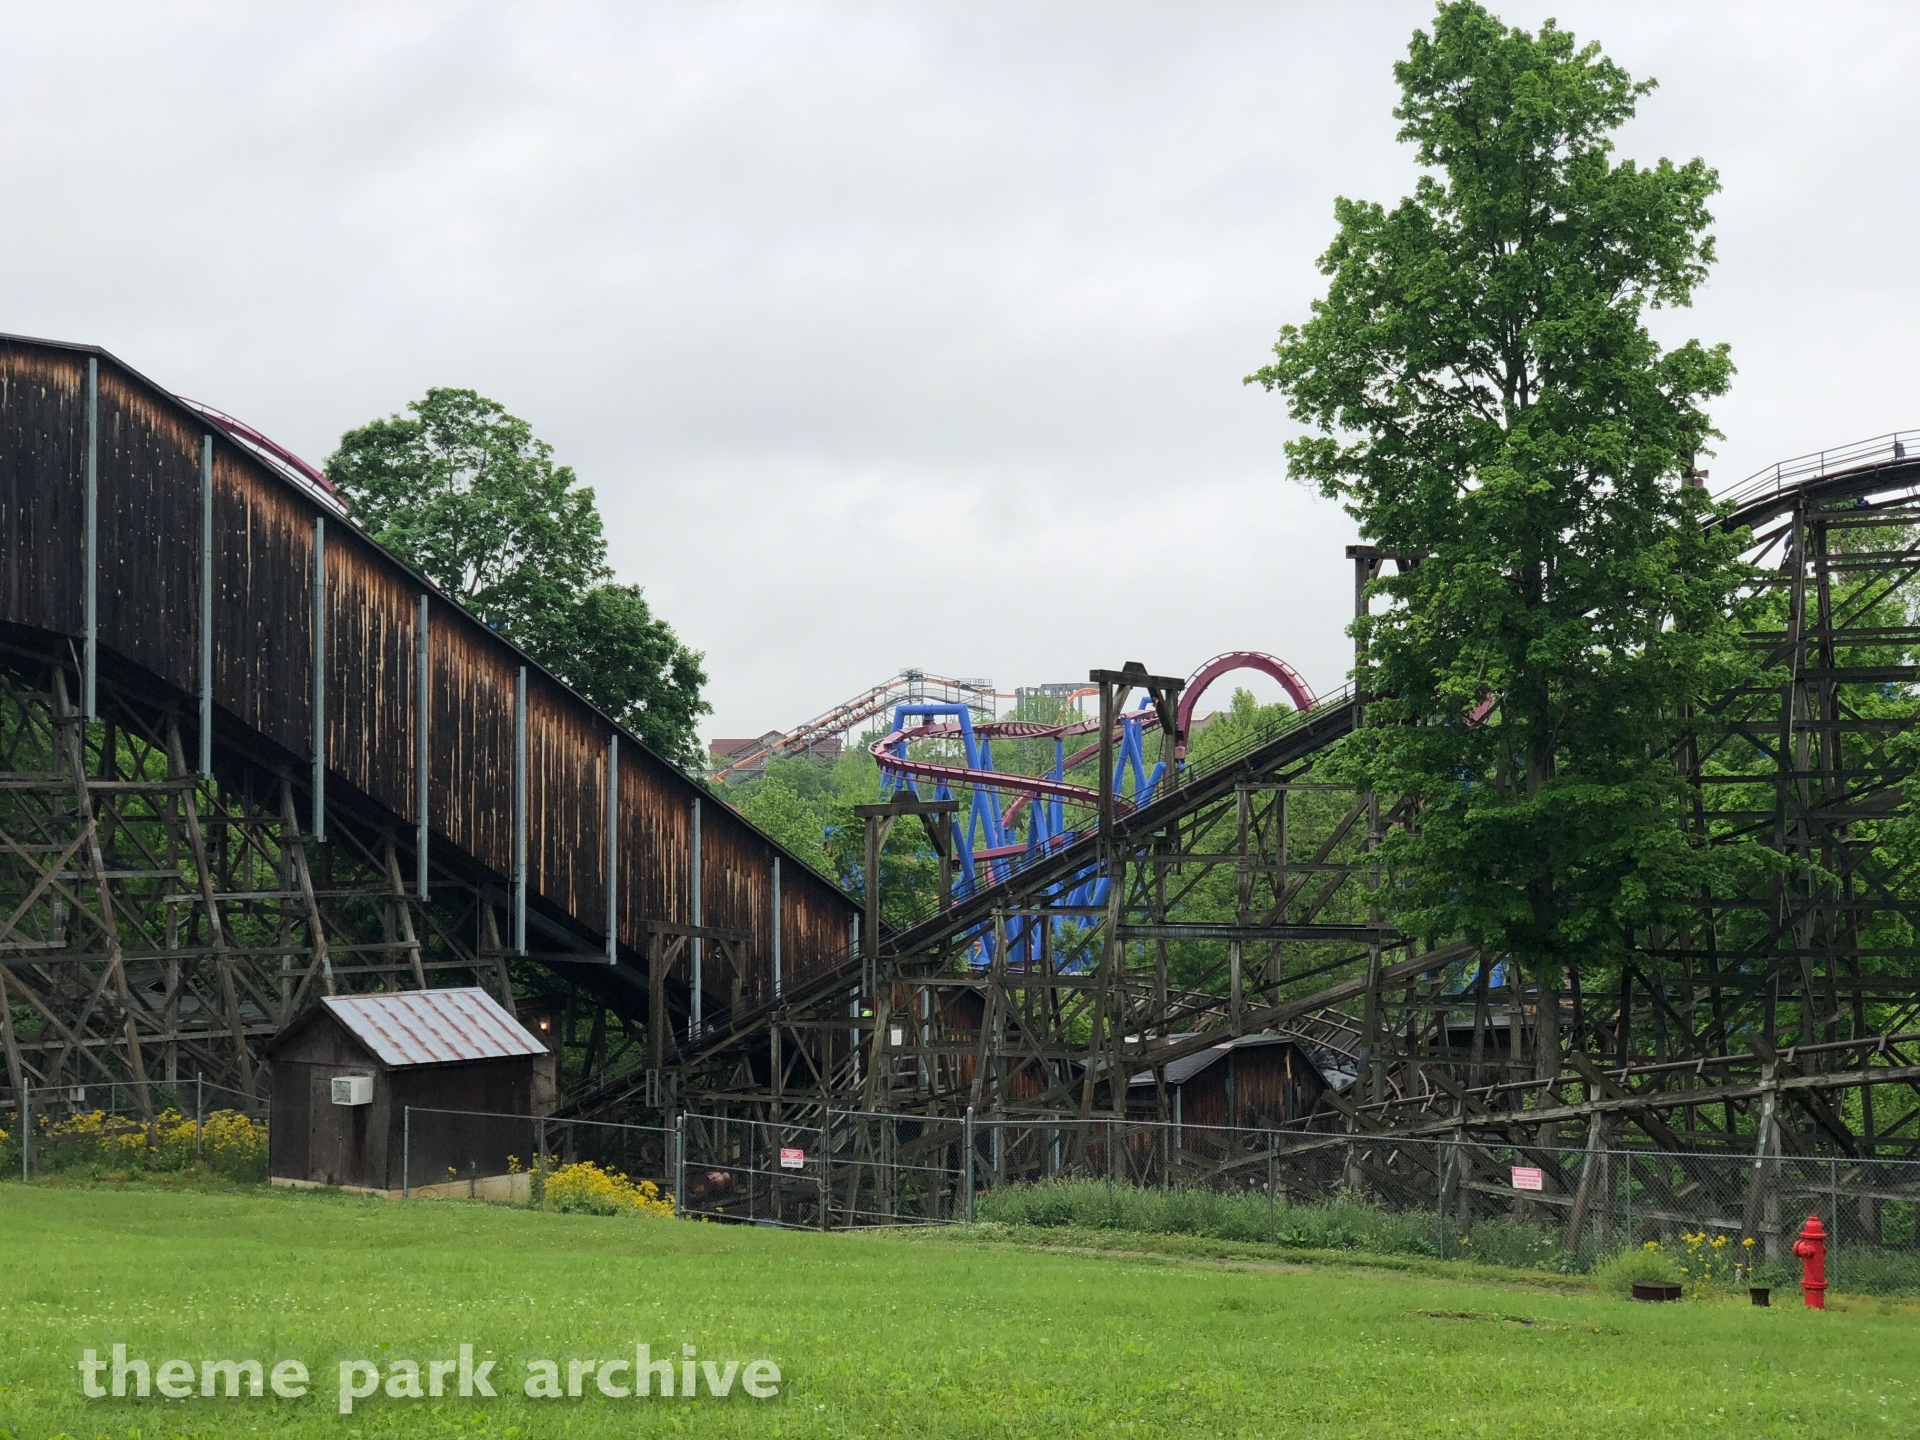 Adventure Express at Kings Island  Theme Park Archive